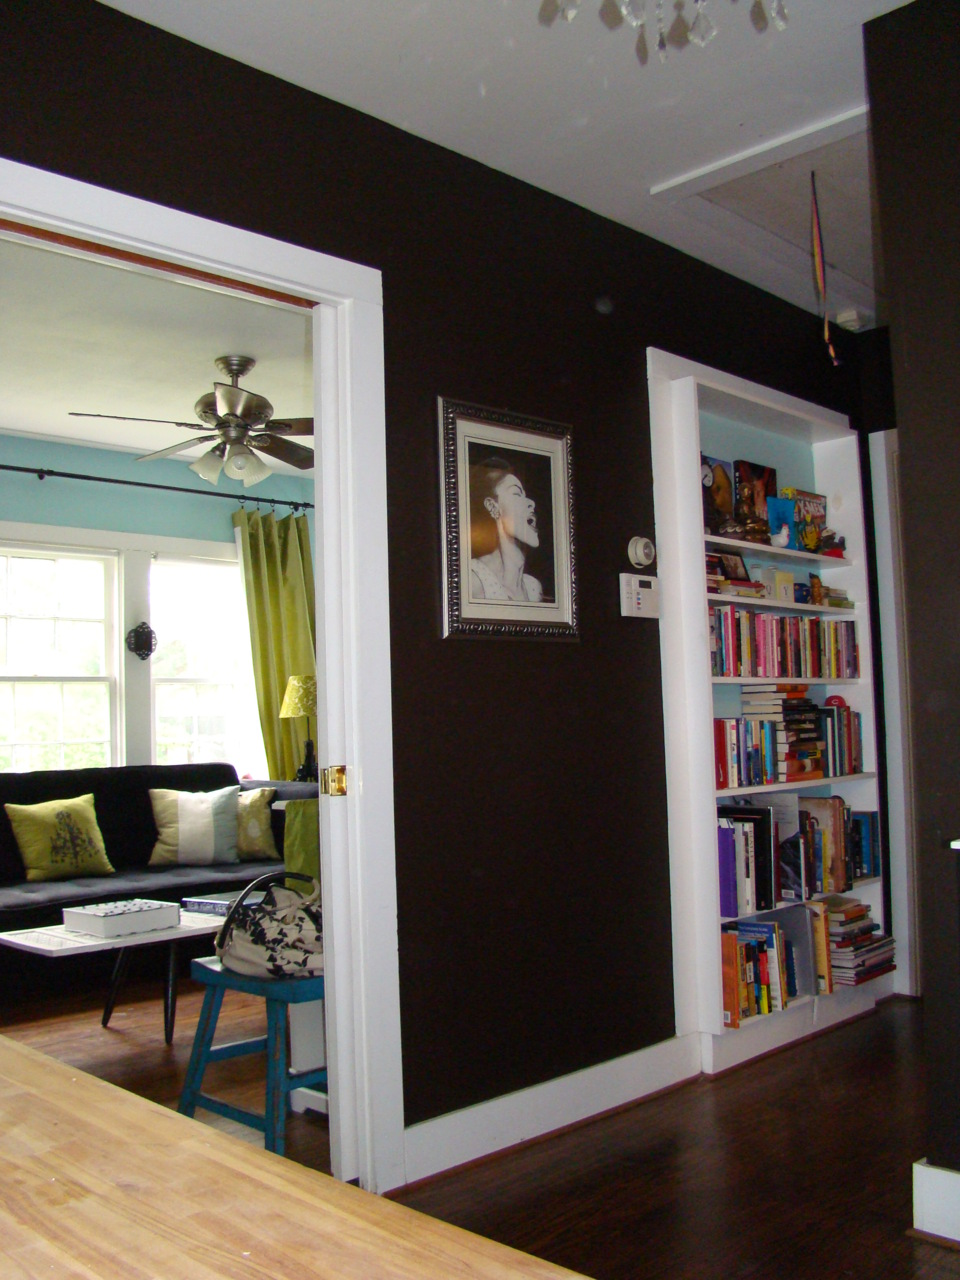 Panting the inside of a bookshelf really makes things pop! It's a very easy weekend project.